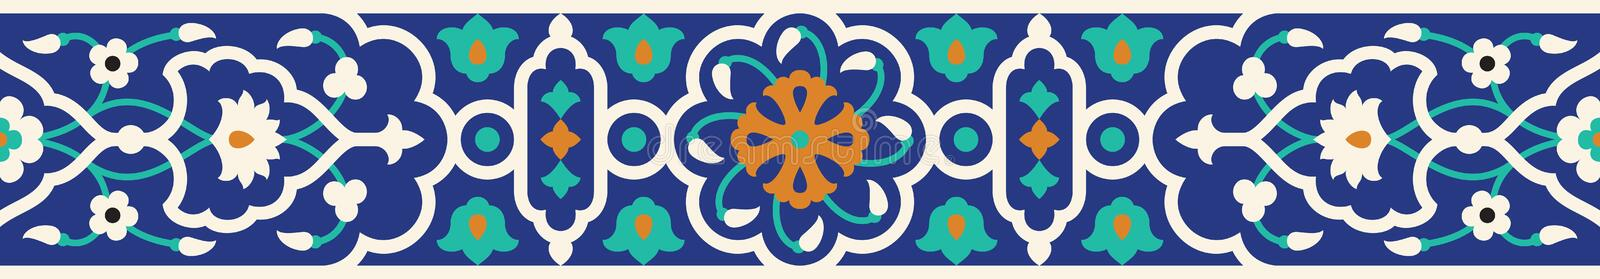 Frontière sans couture florale arabe Conception islamique traditionnelle illustration stock